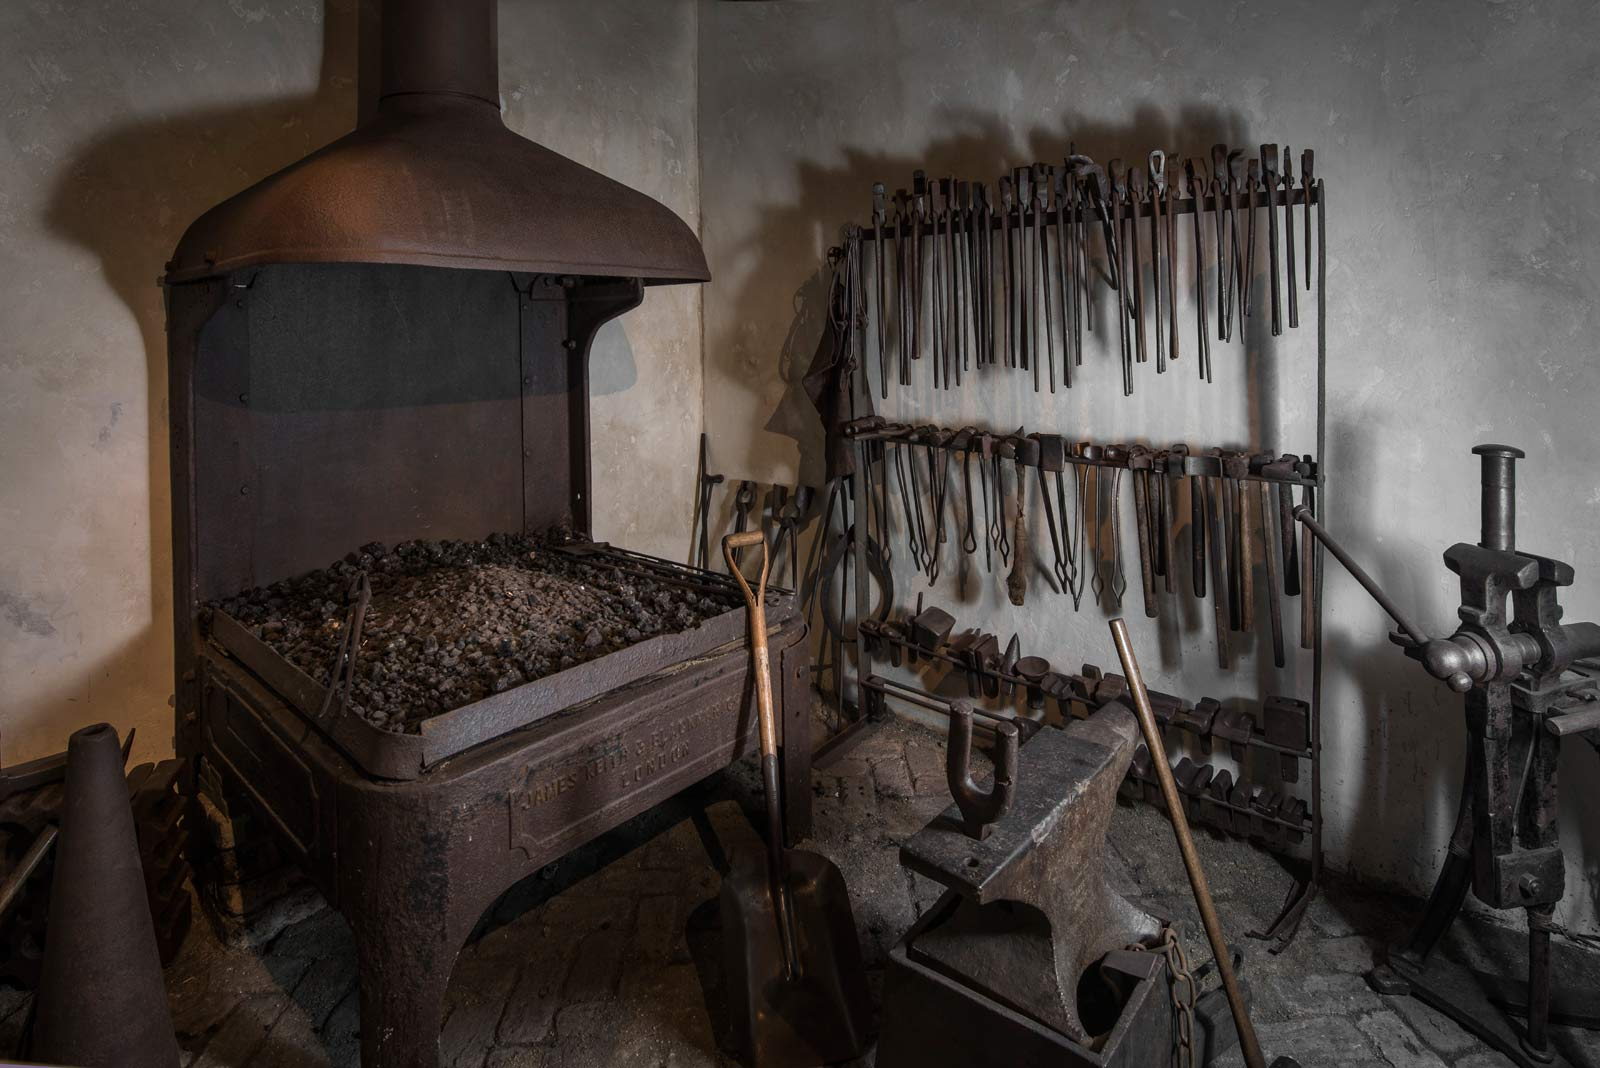 Recreation of a blacksmith's forge used to make parts for ships and warehouses in the Port of London.